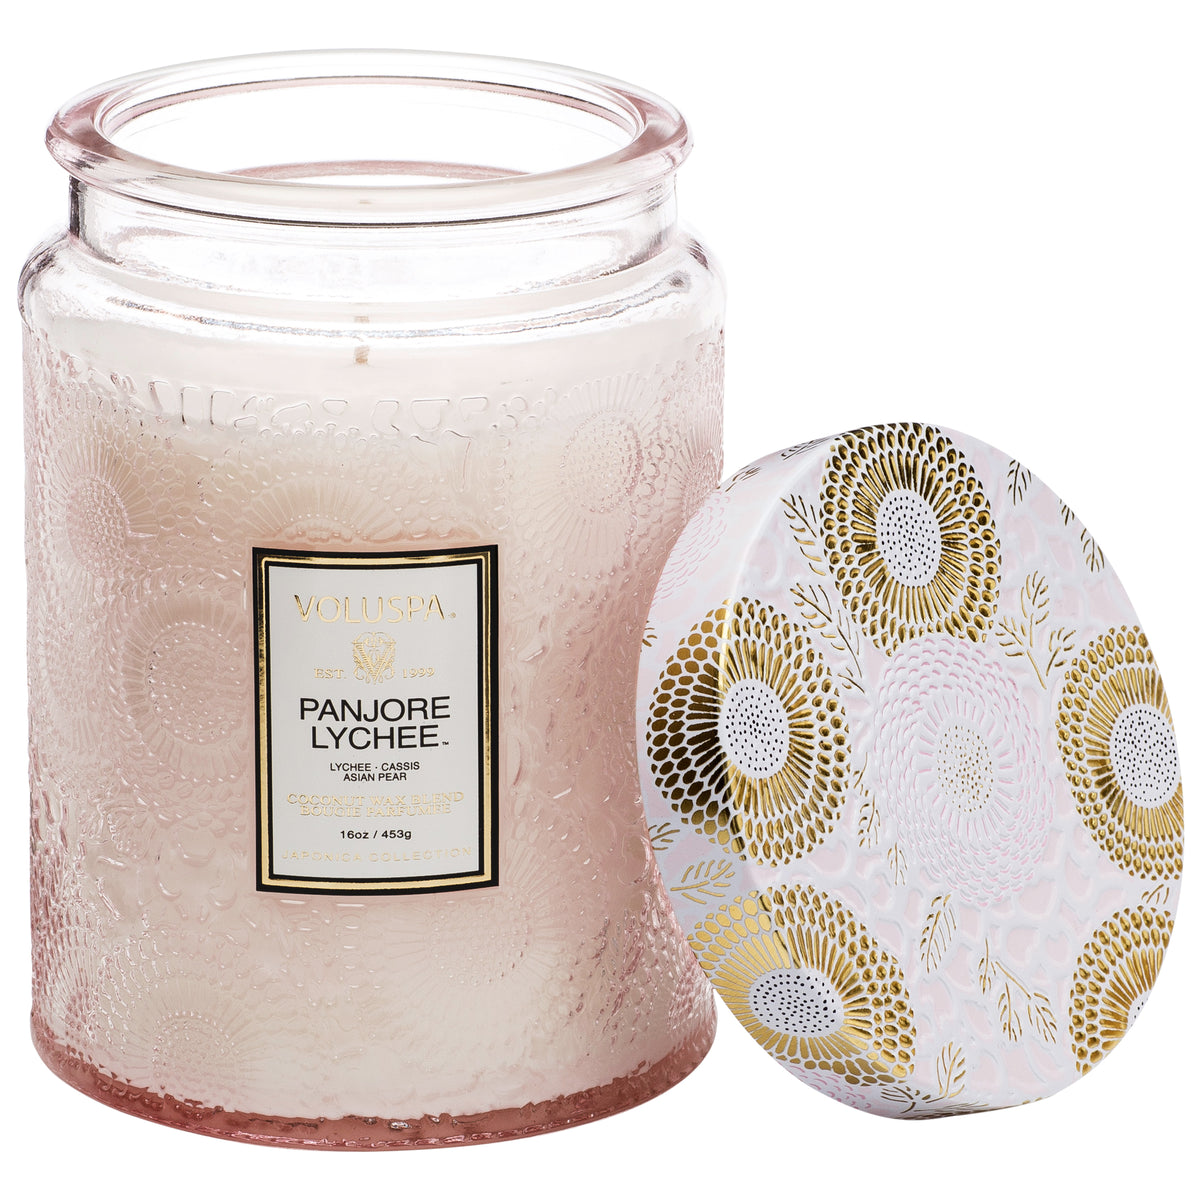 Panjore Lychee - Large Jar Candle - 2